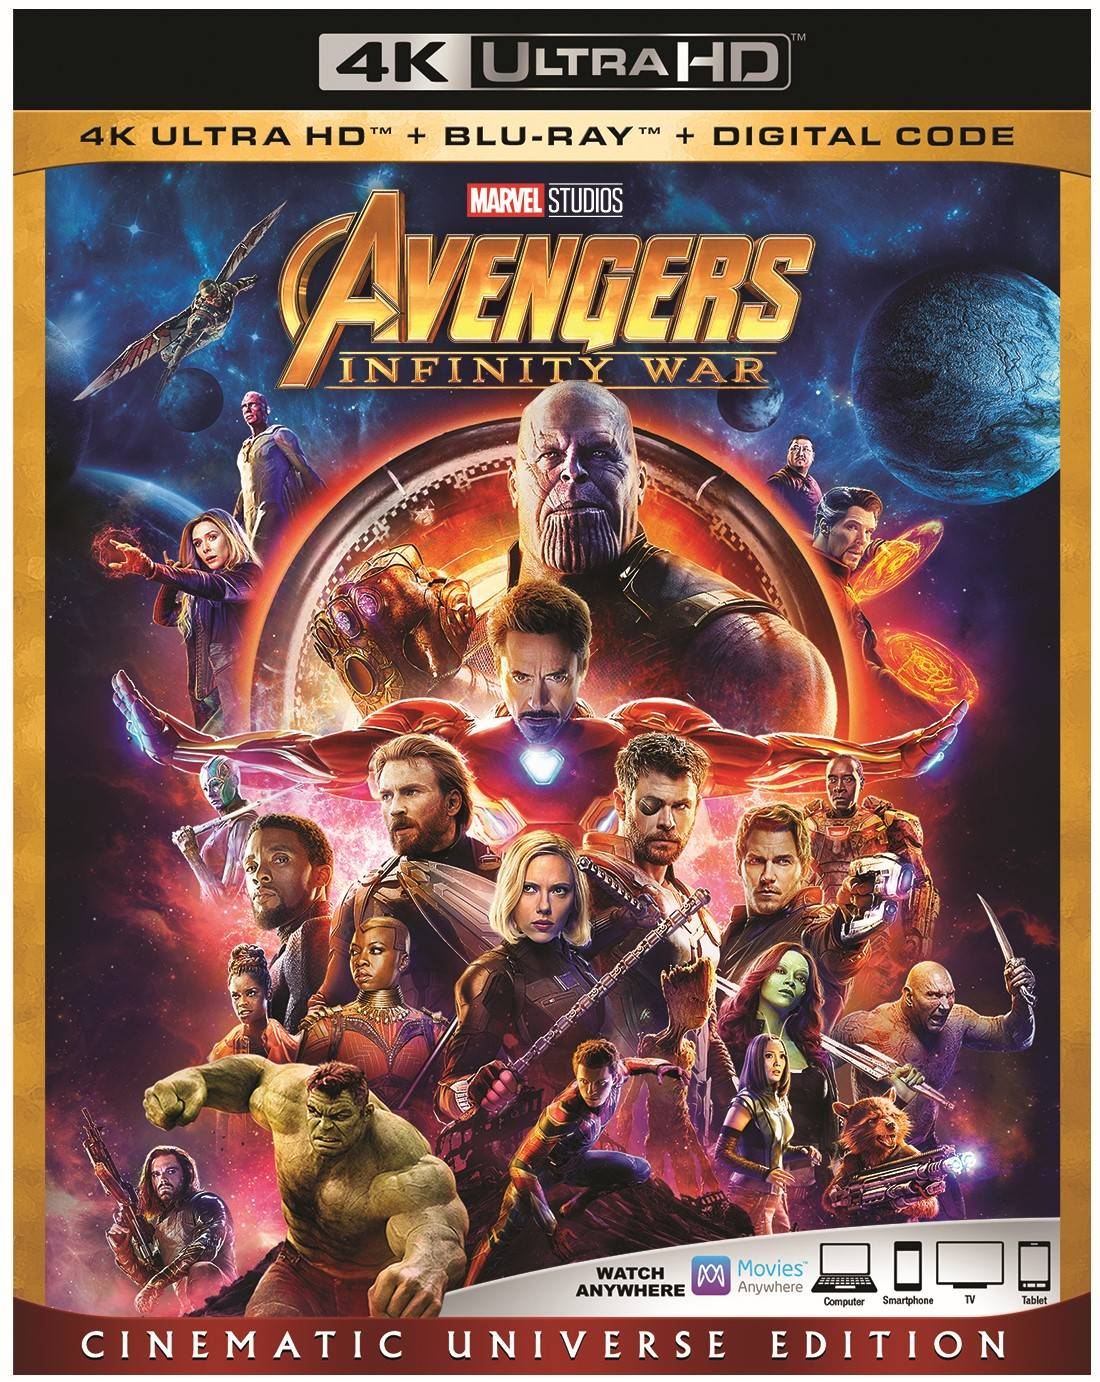 Avengers: Infinity War (Cinematic Universe Edition) (4K Ultra HD + Blu-ray + Digital Code) by